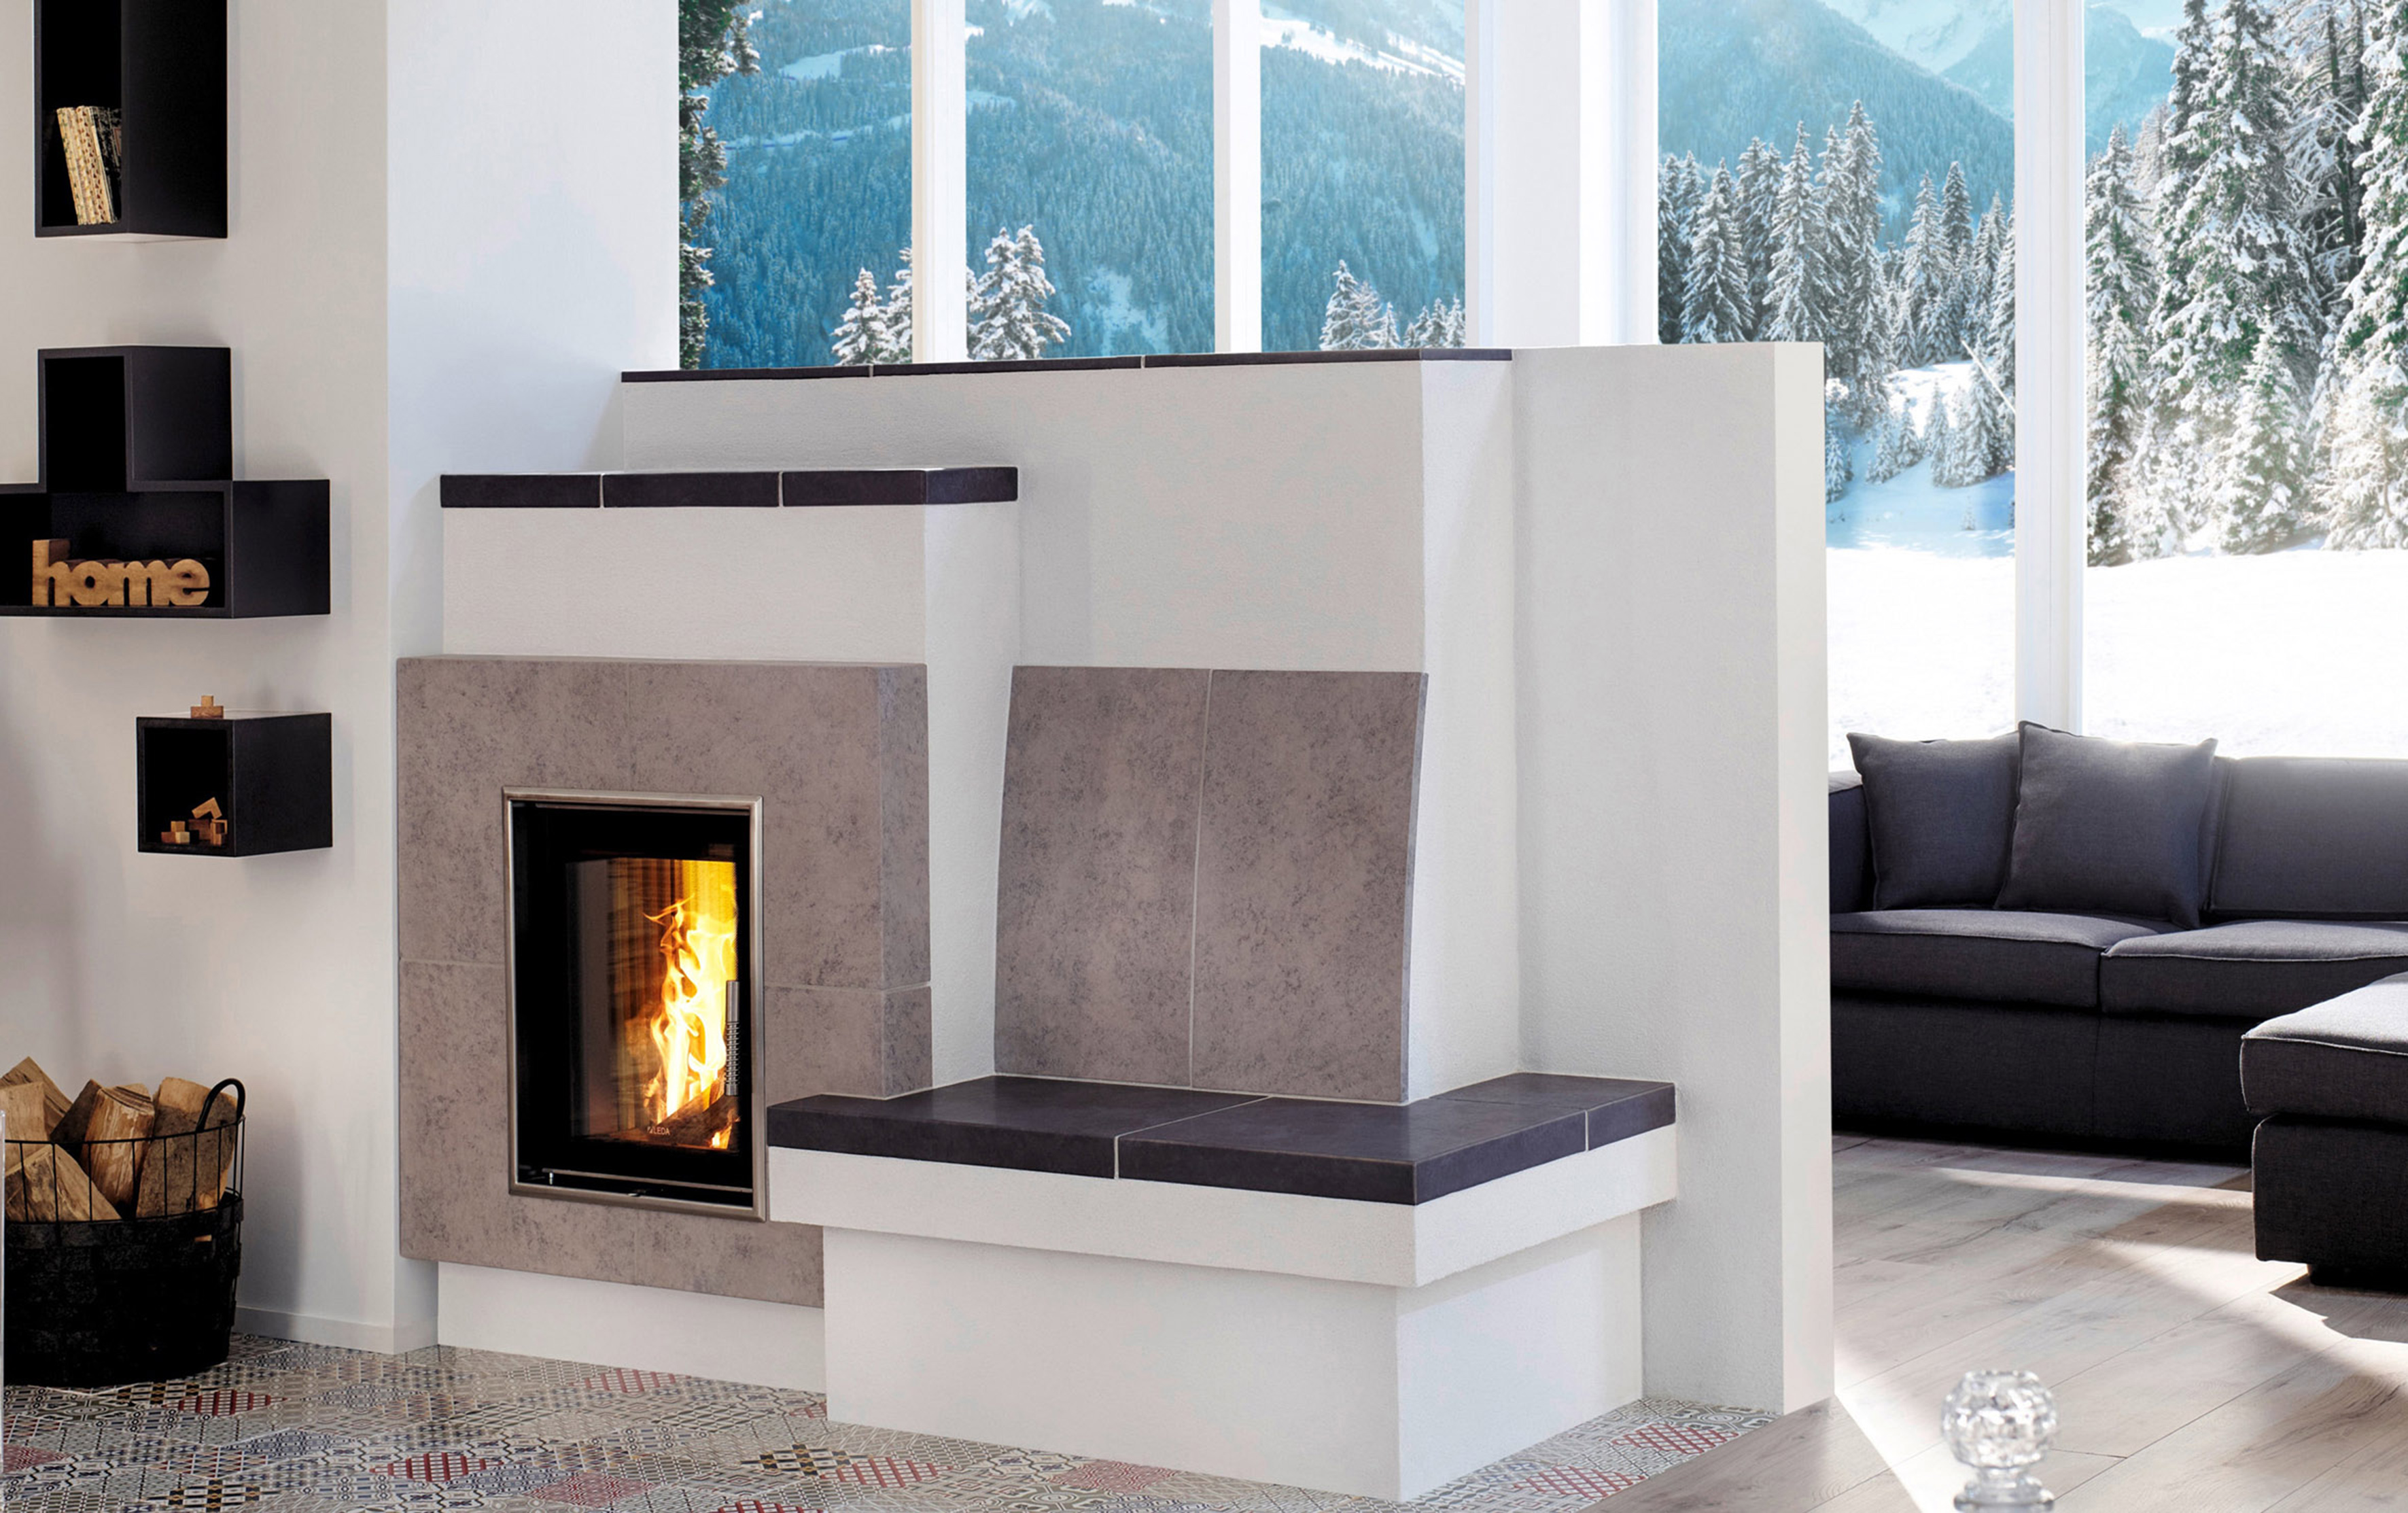 Heating with wood saves costs and creates a relaxed atmosphere. © HKI